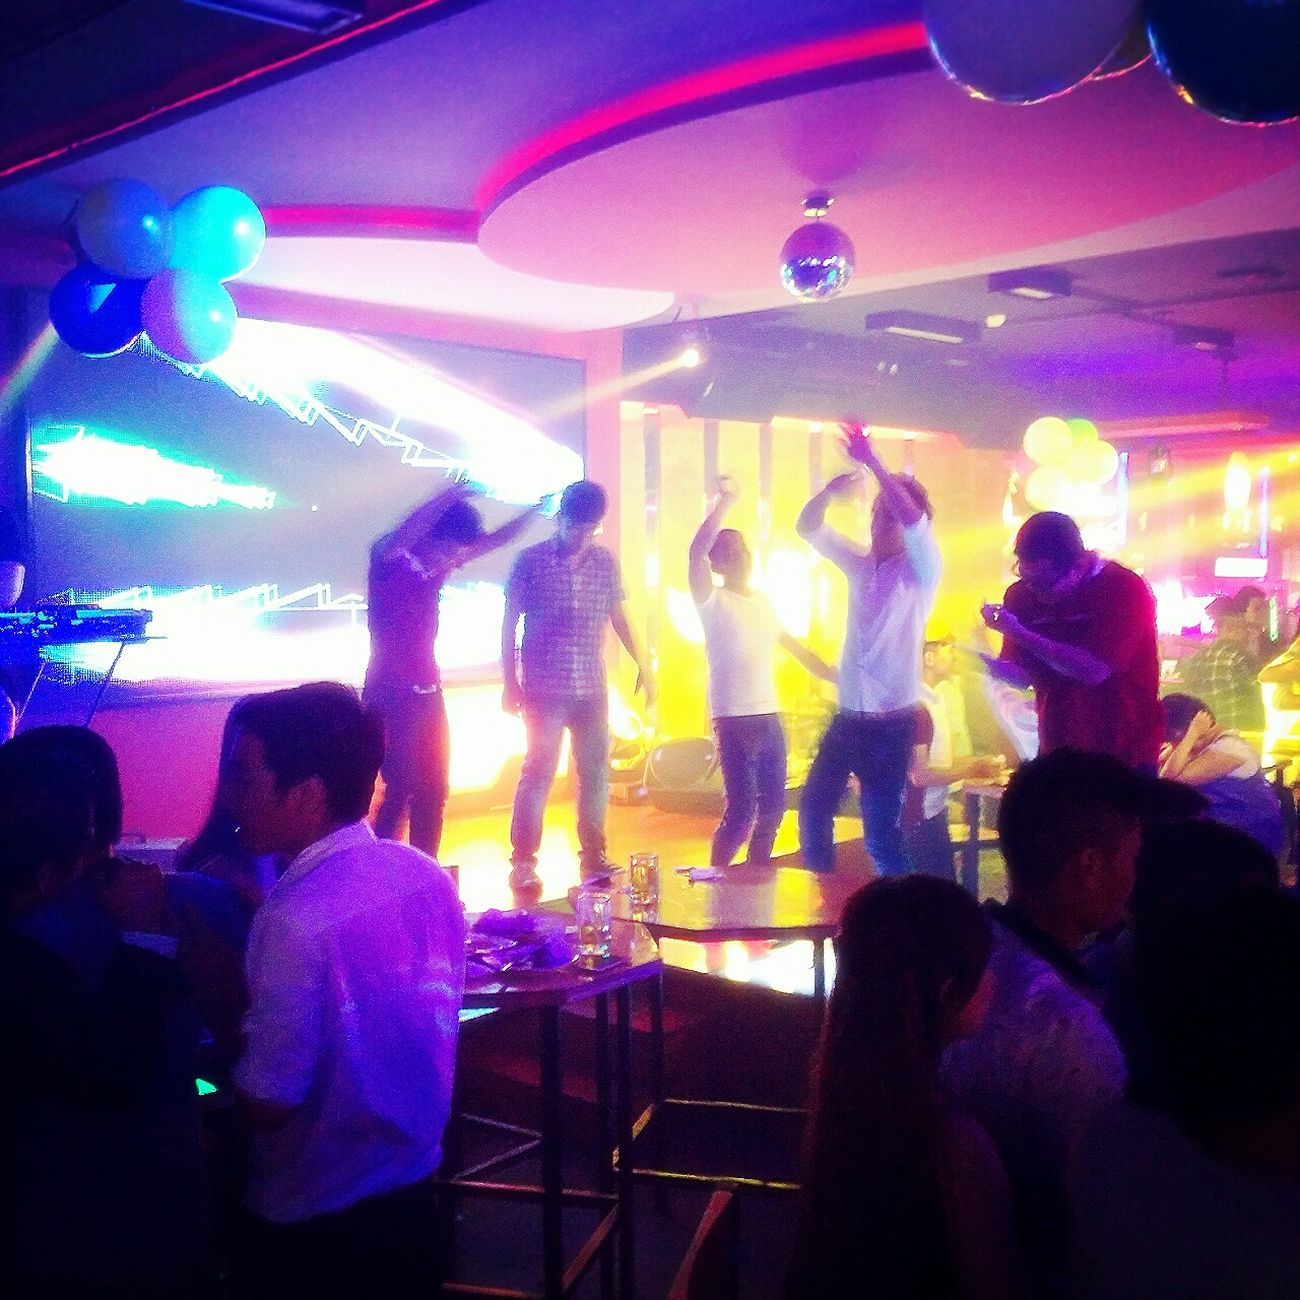 Weekend Guys On The Floor DANCE ♥ Beer Club Enjoying Life Young Wild And Free(; Saigon Night Nightlife